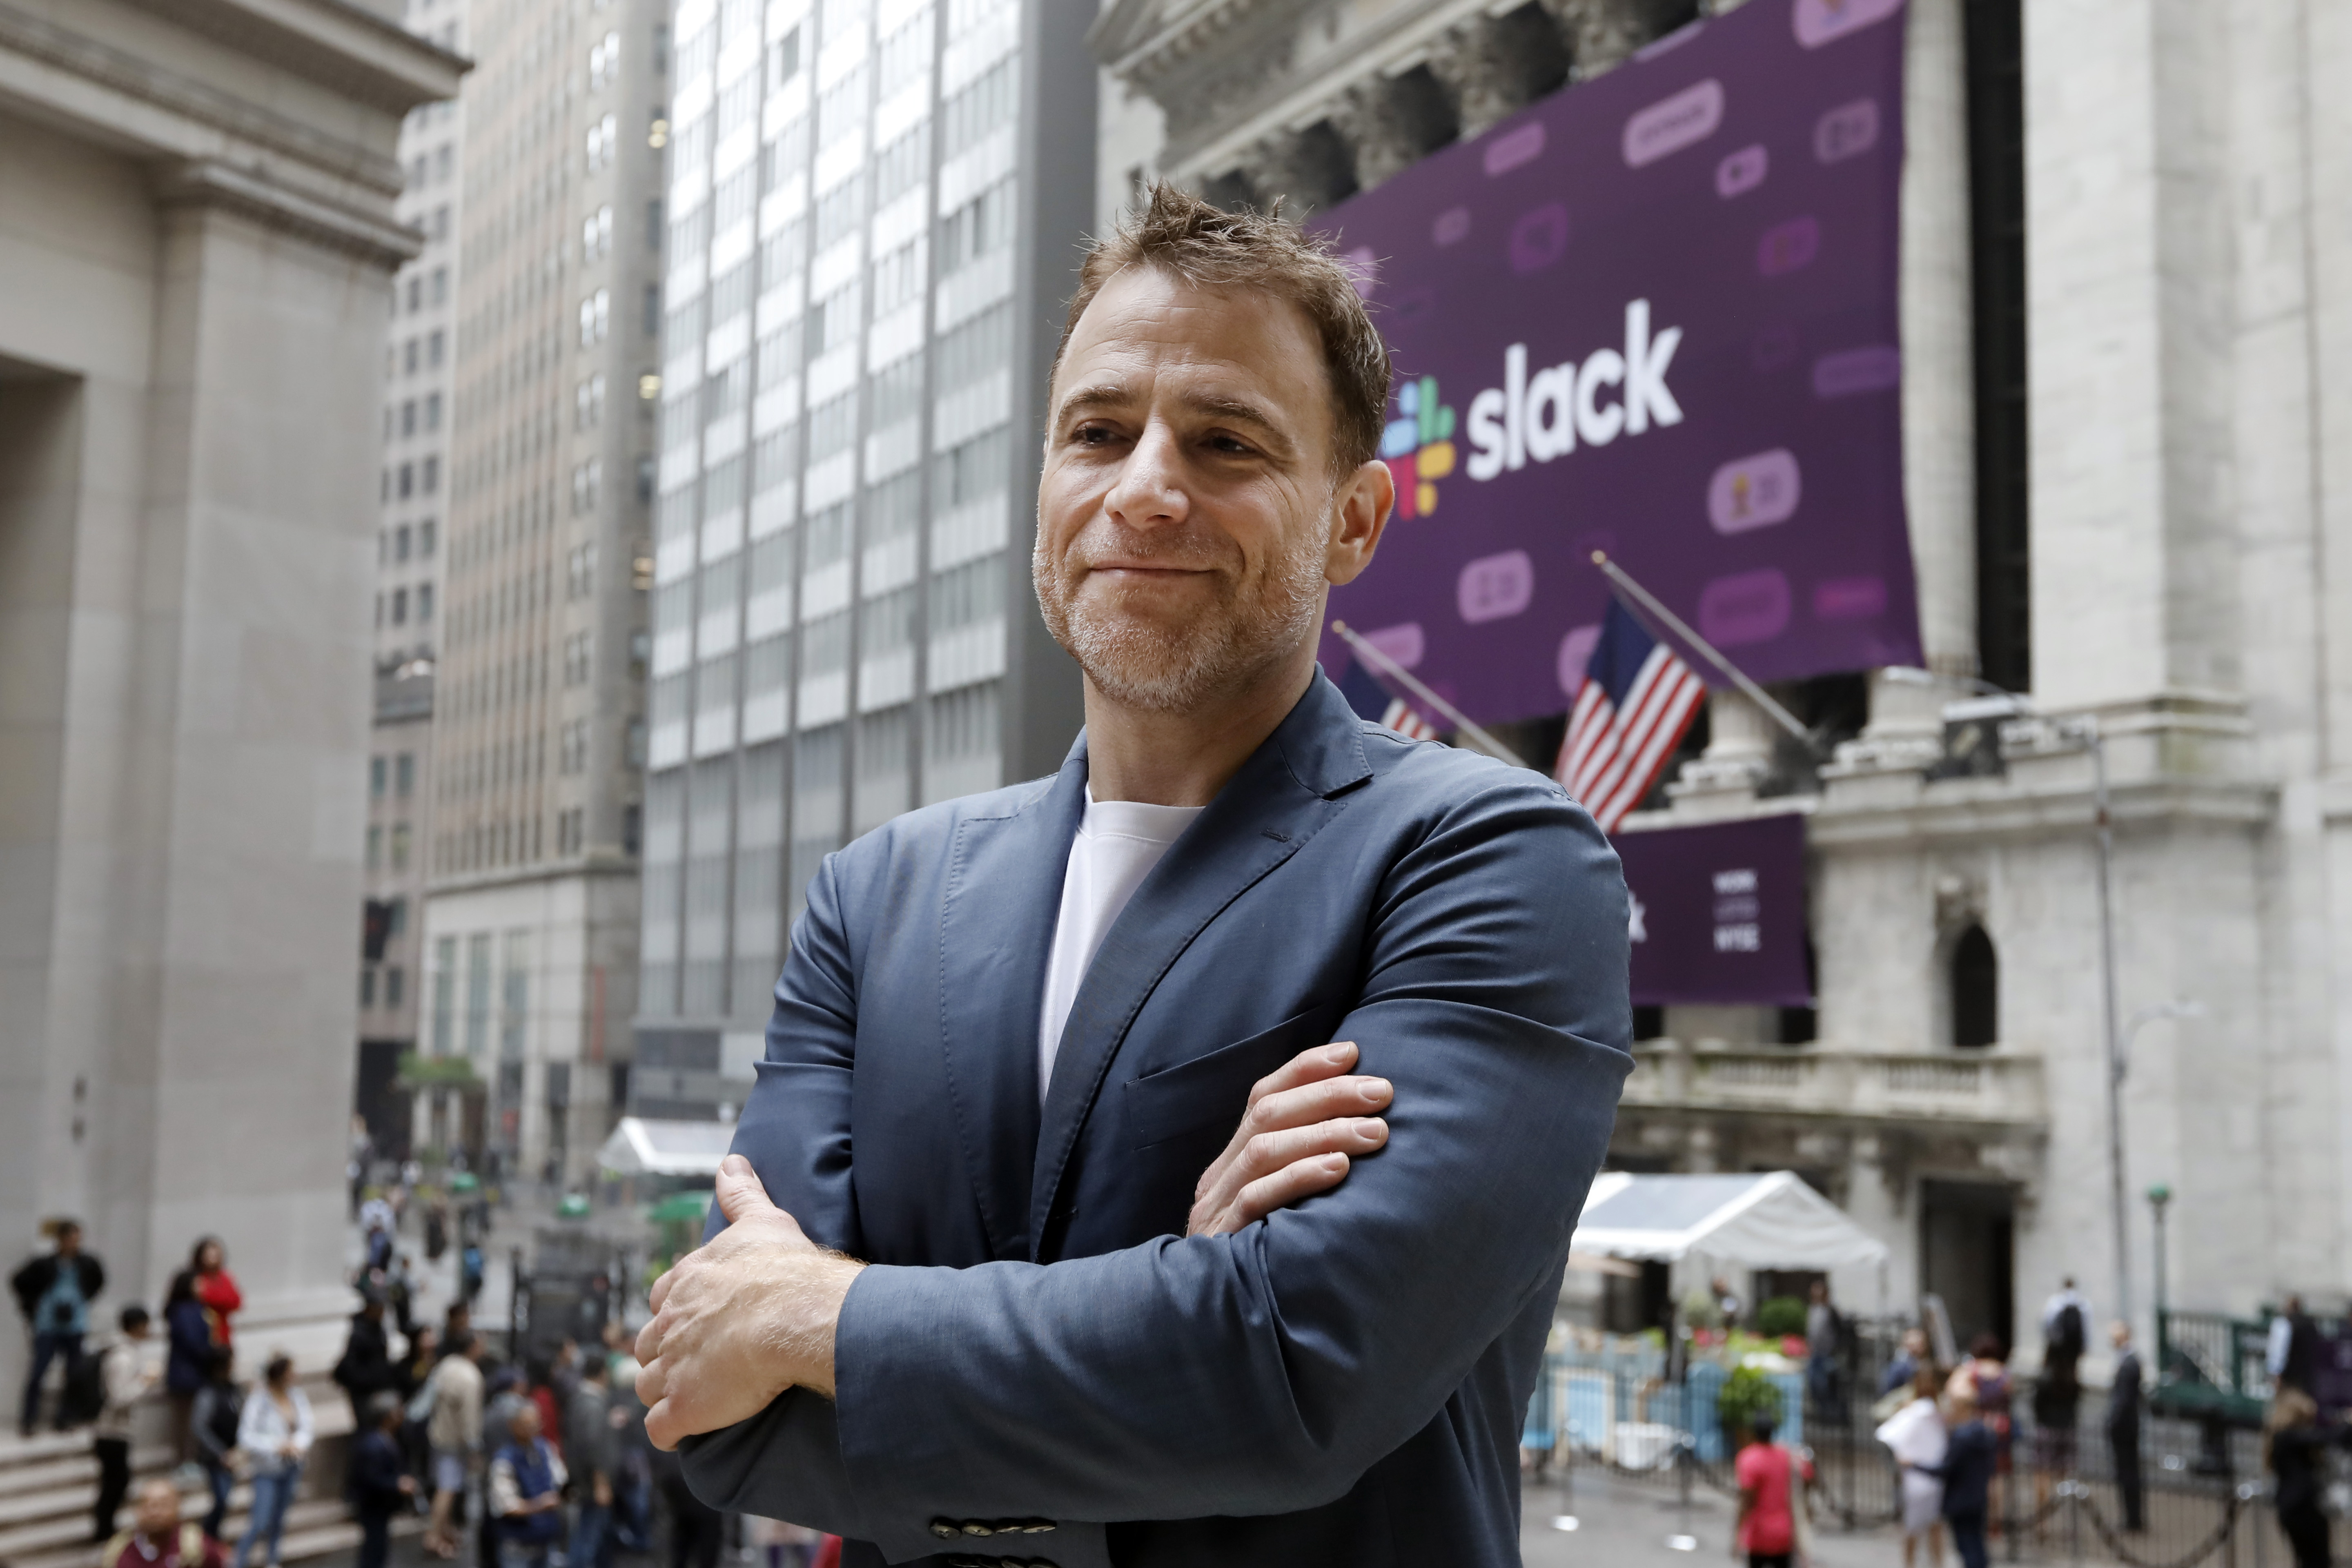 Slack CEO Stewart Butterfield poses for photos outside the New York Stock Exchange before his company's IPO, Thursday, June 20, 2019.